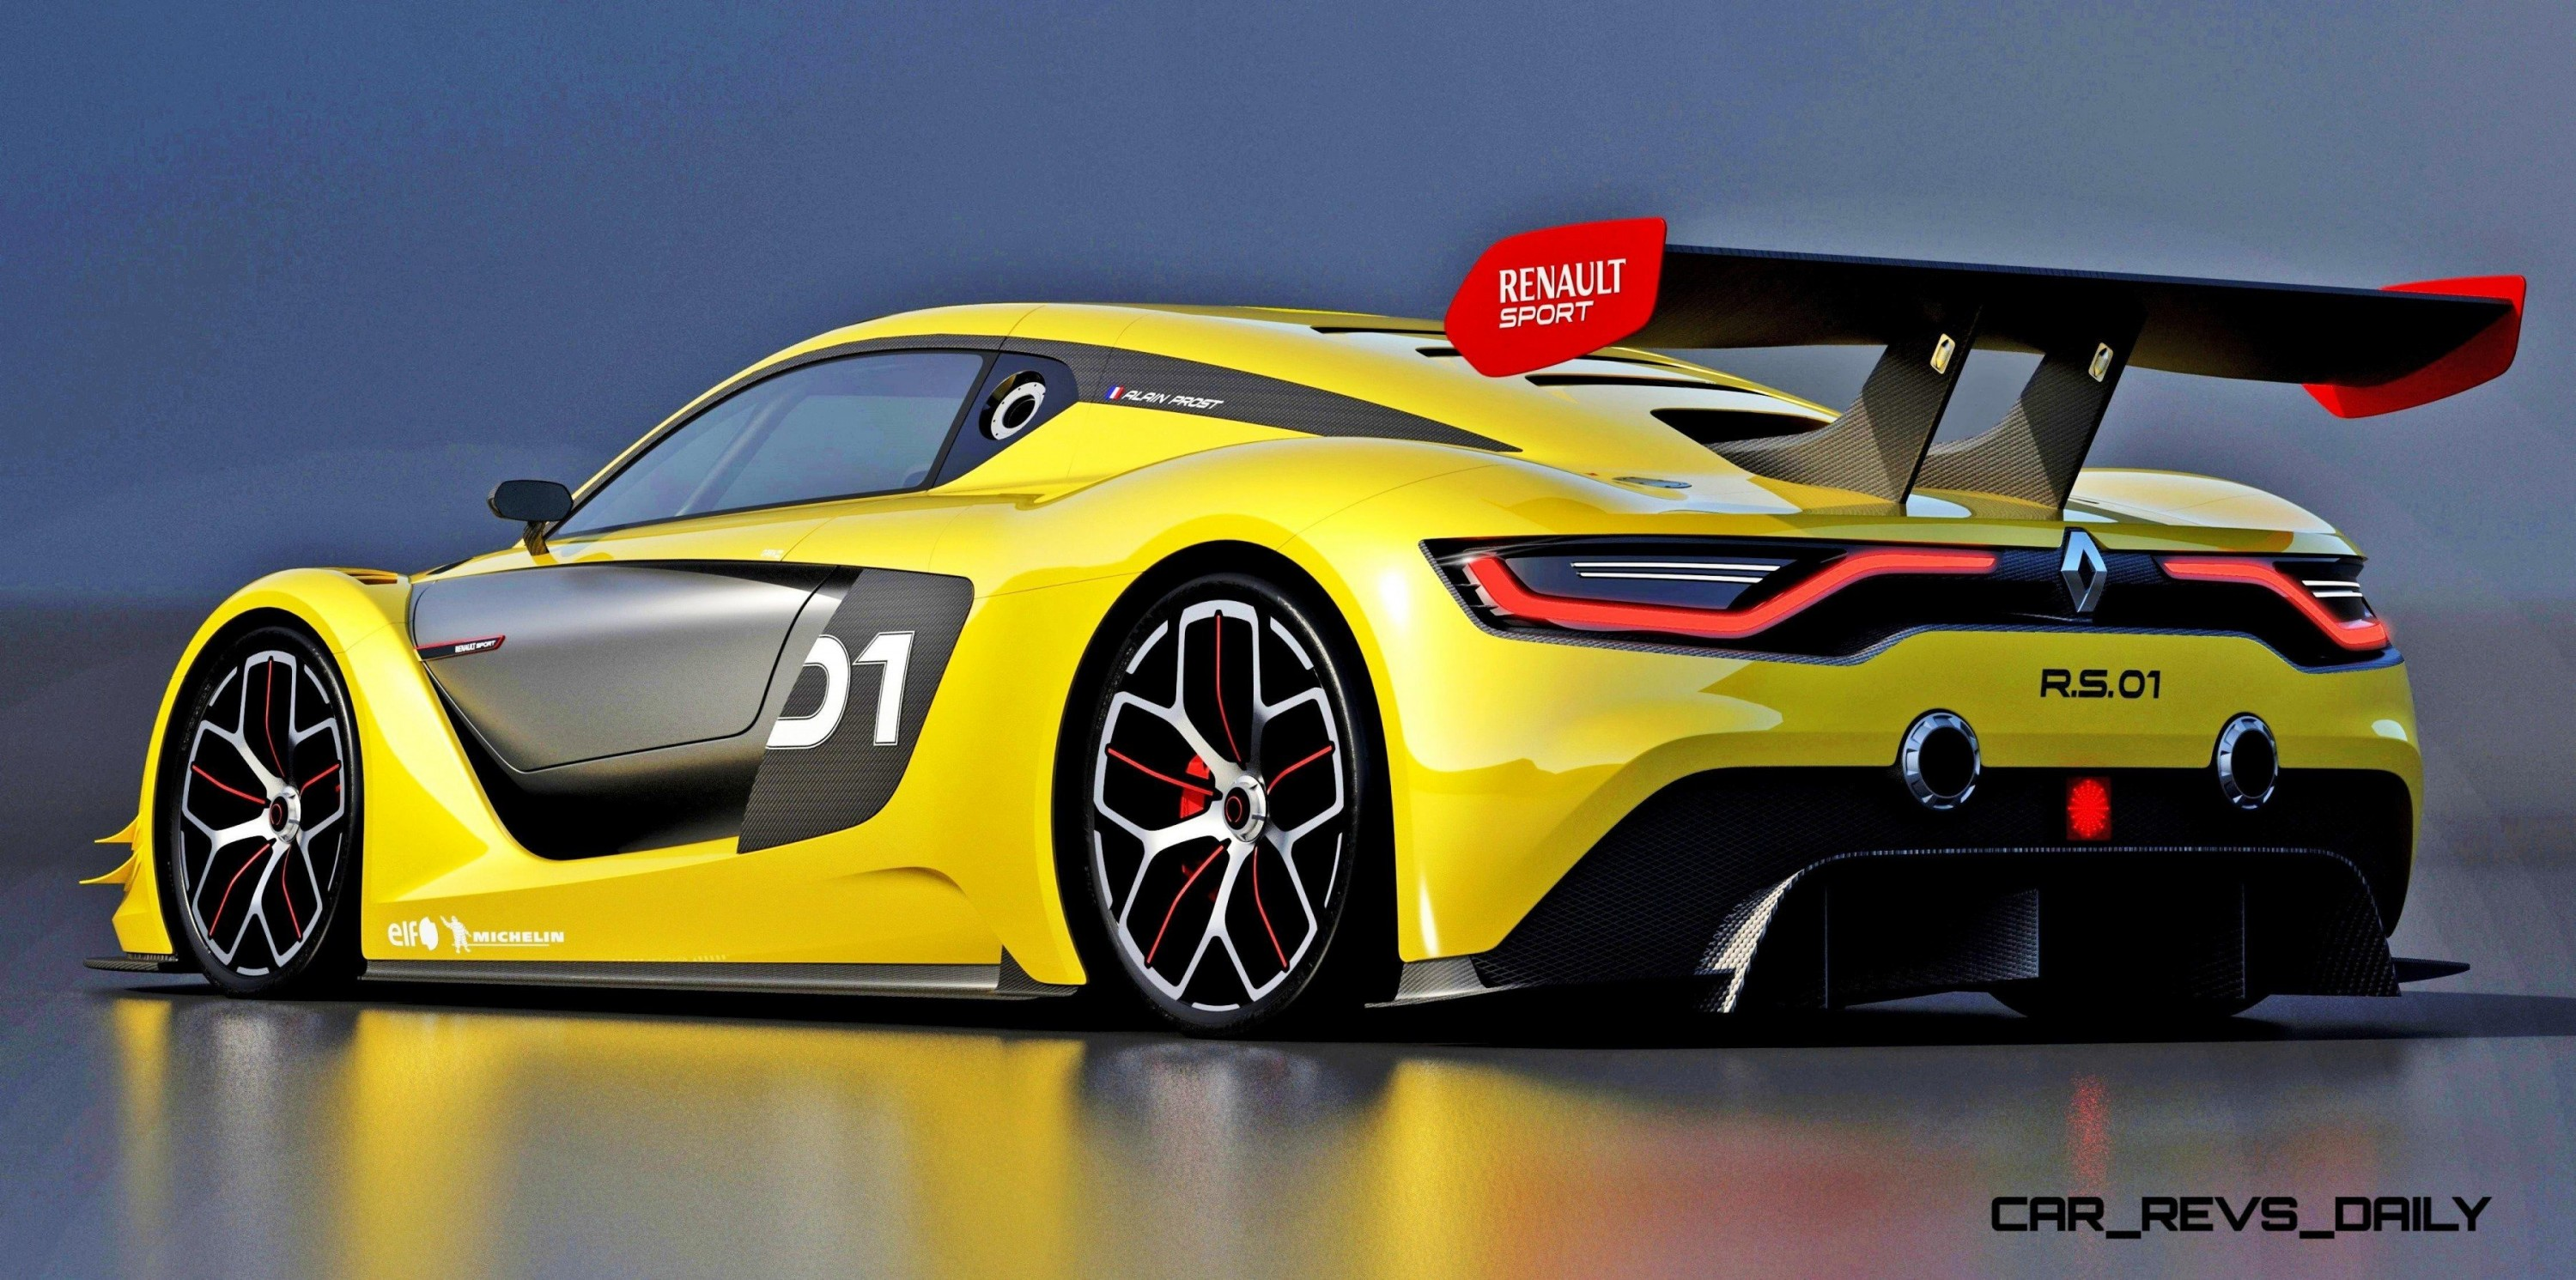 RenaultSport R.S. 01 Racecar Runs GT-R Engine In Mid-Ship